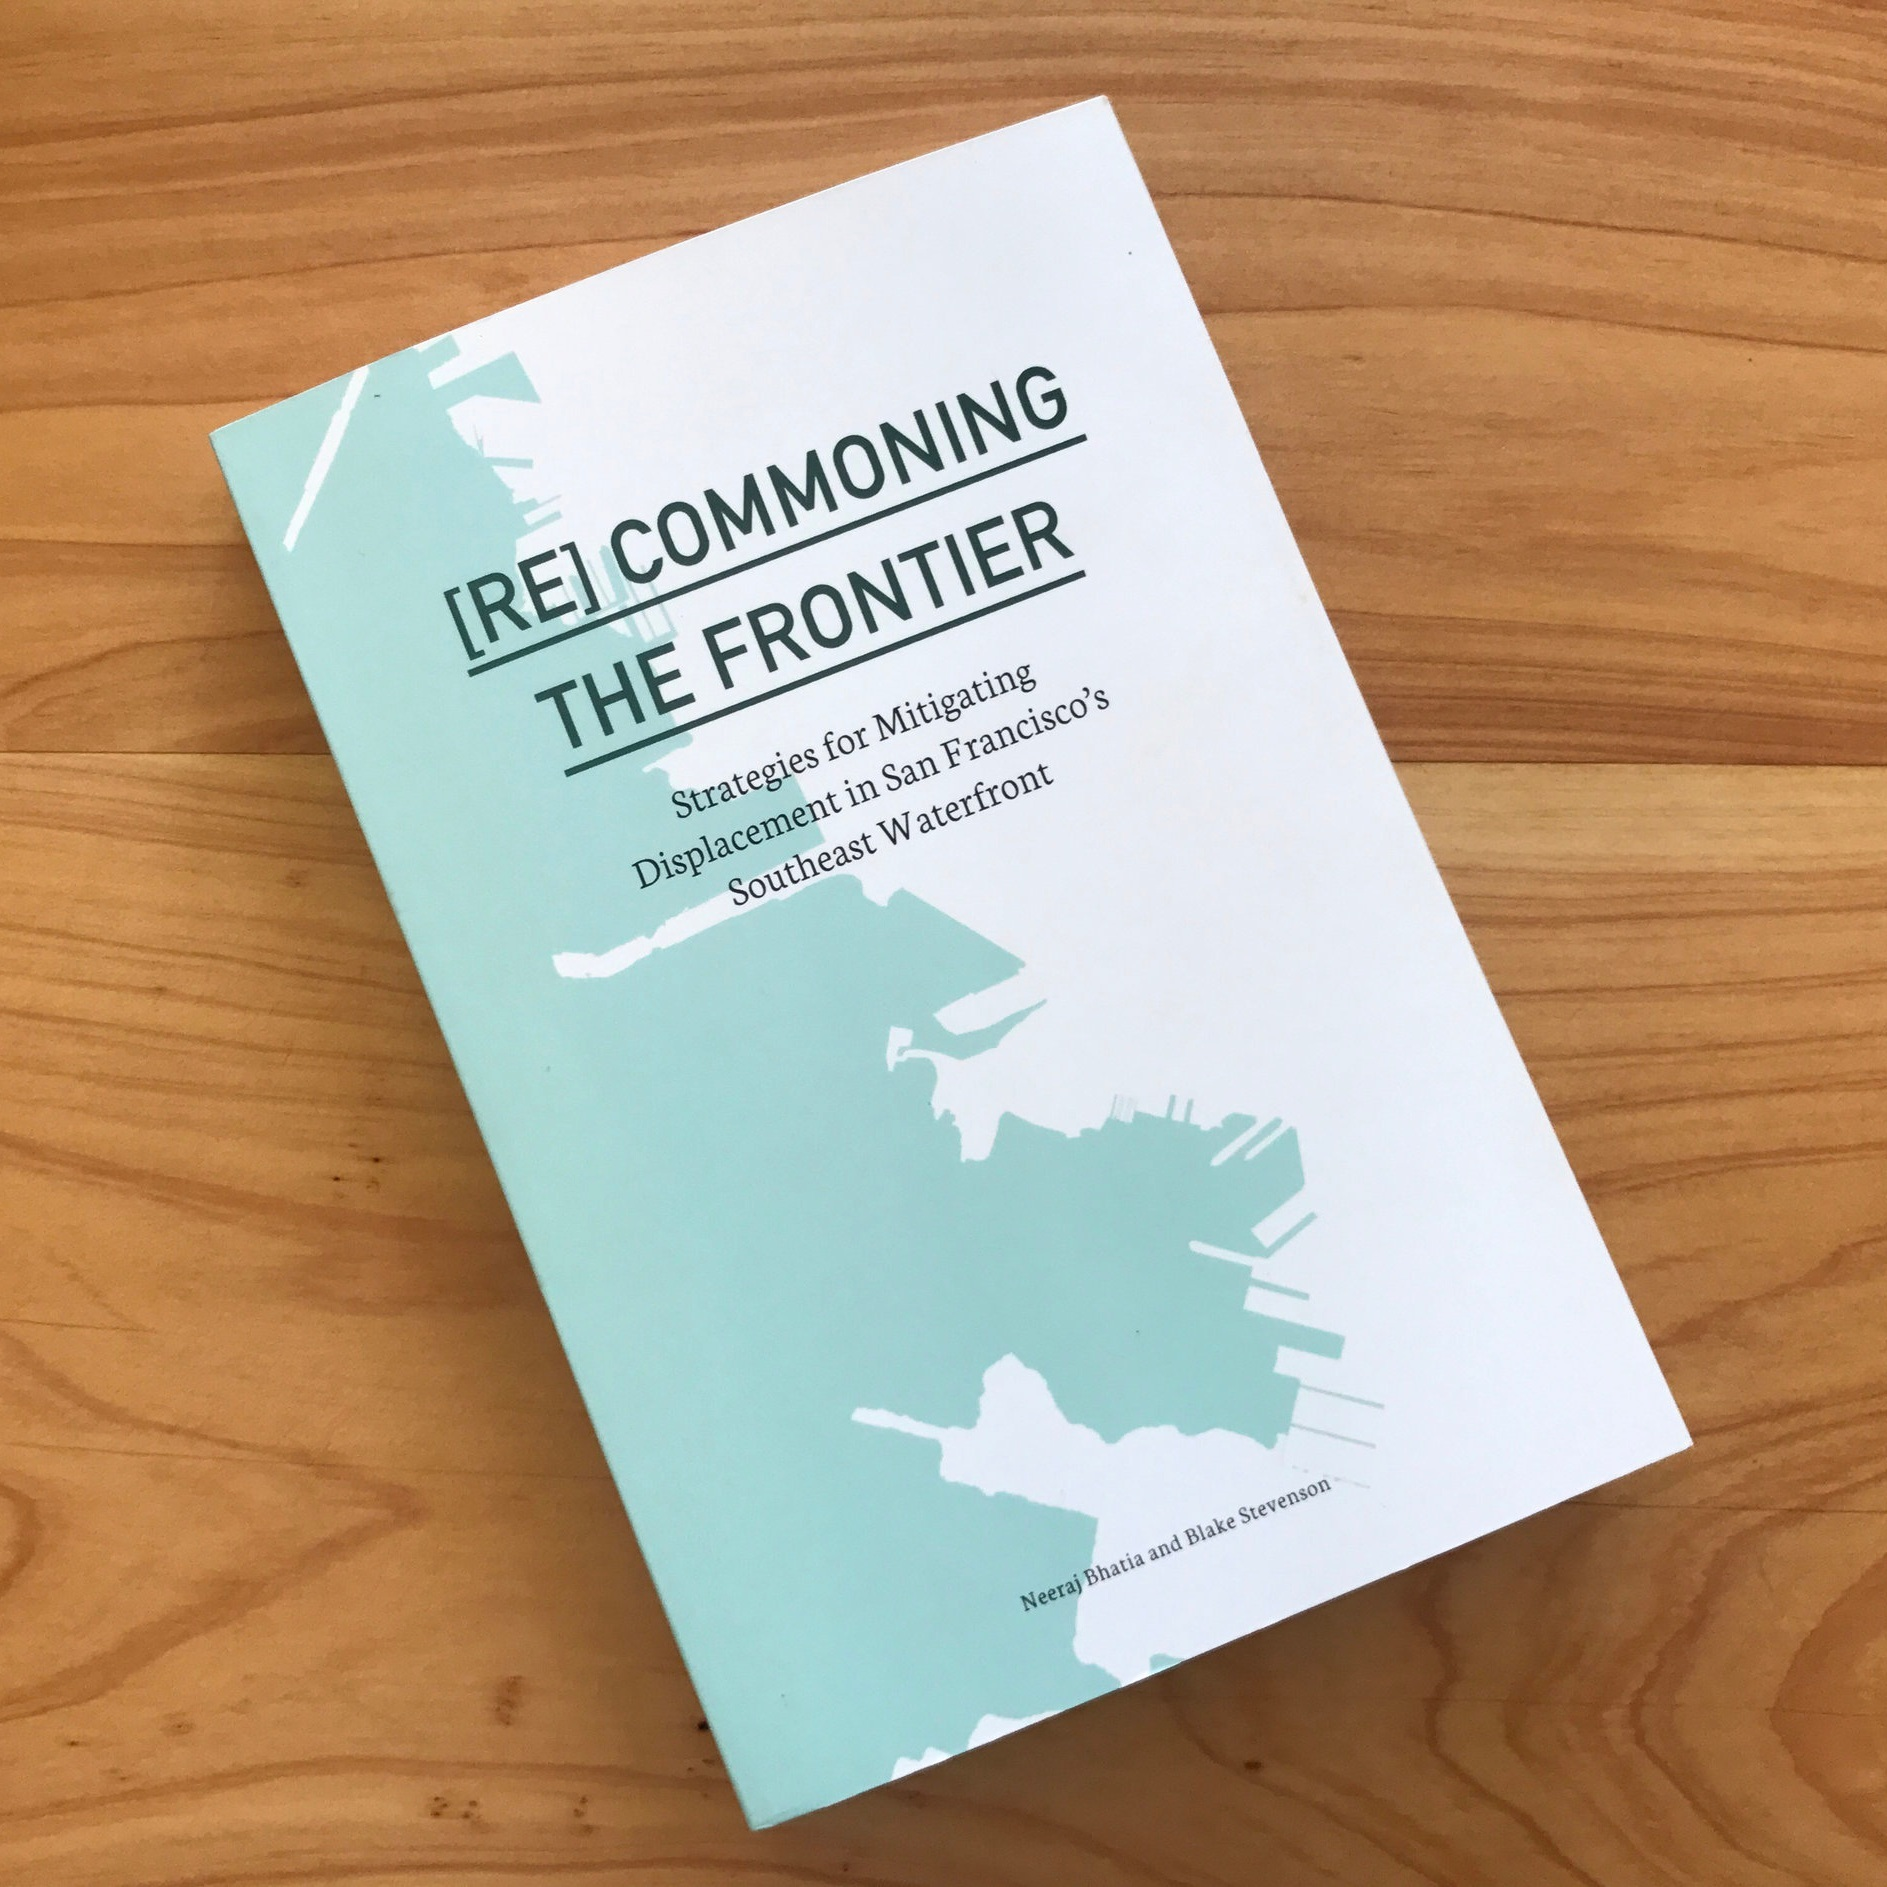 [RE] COMMONING THE FRONTIER  Publication '17